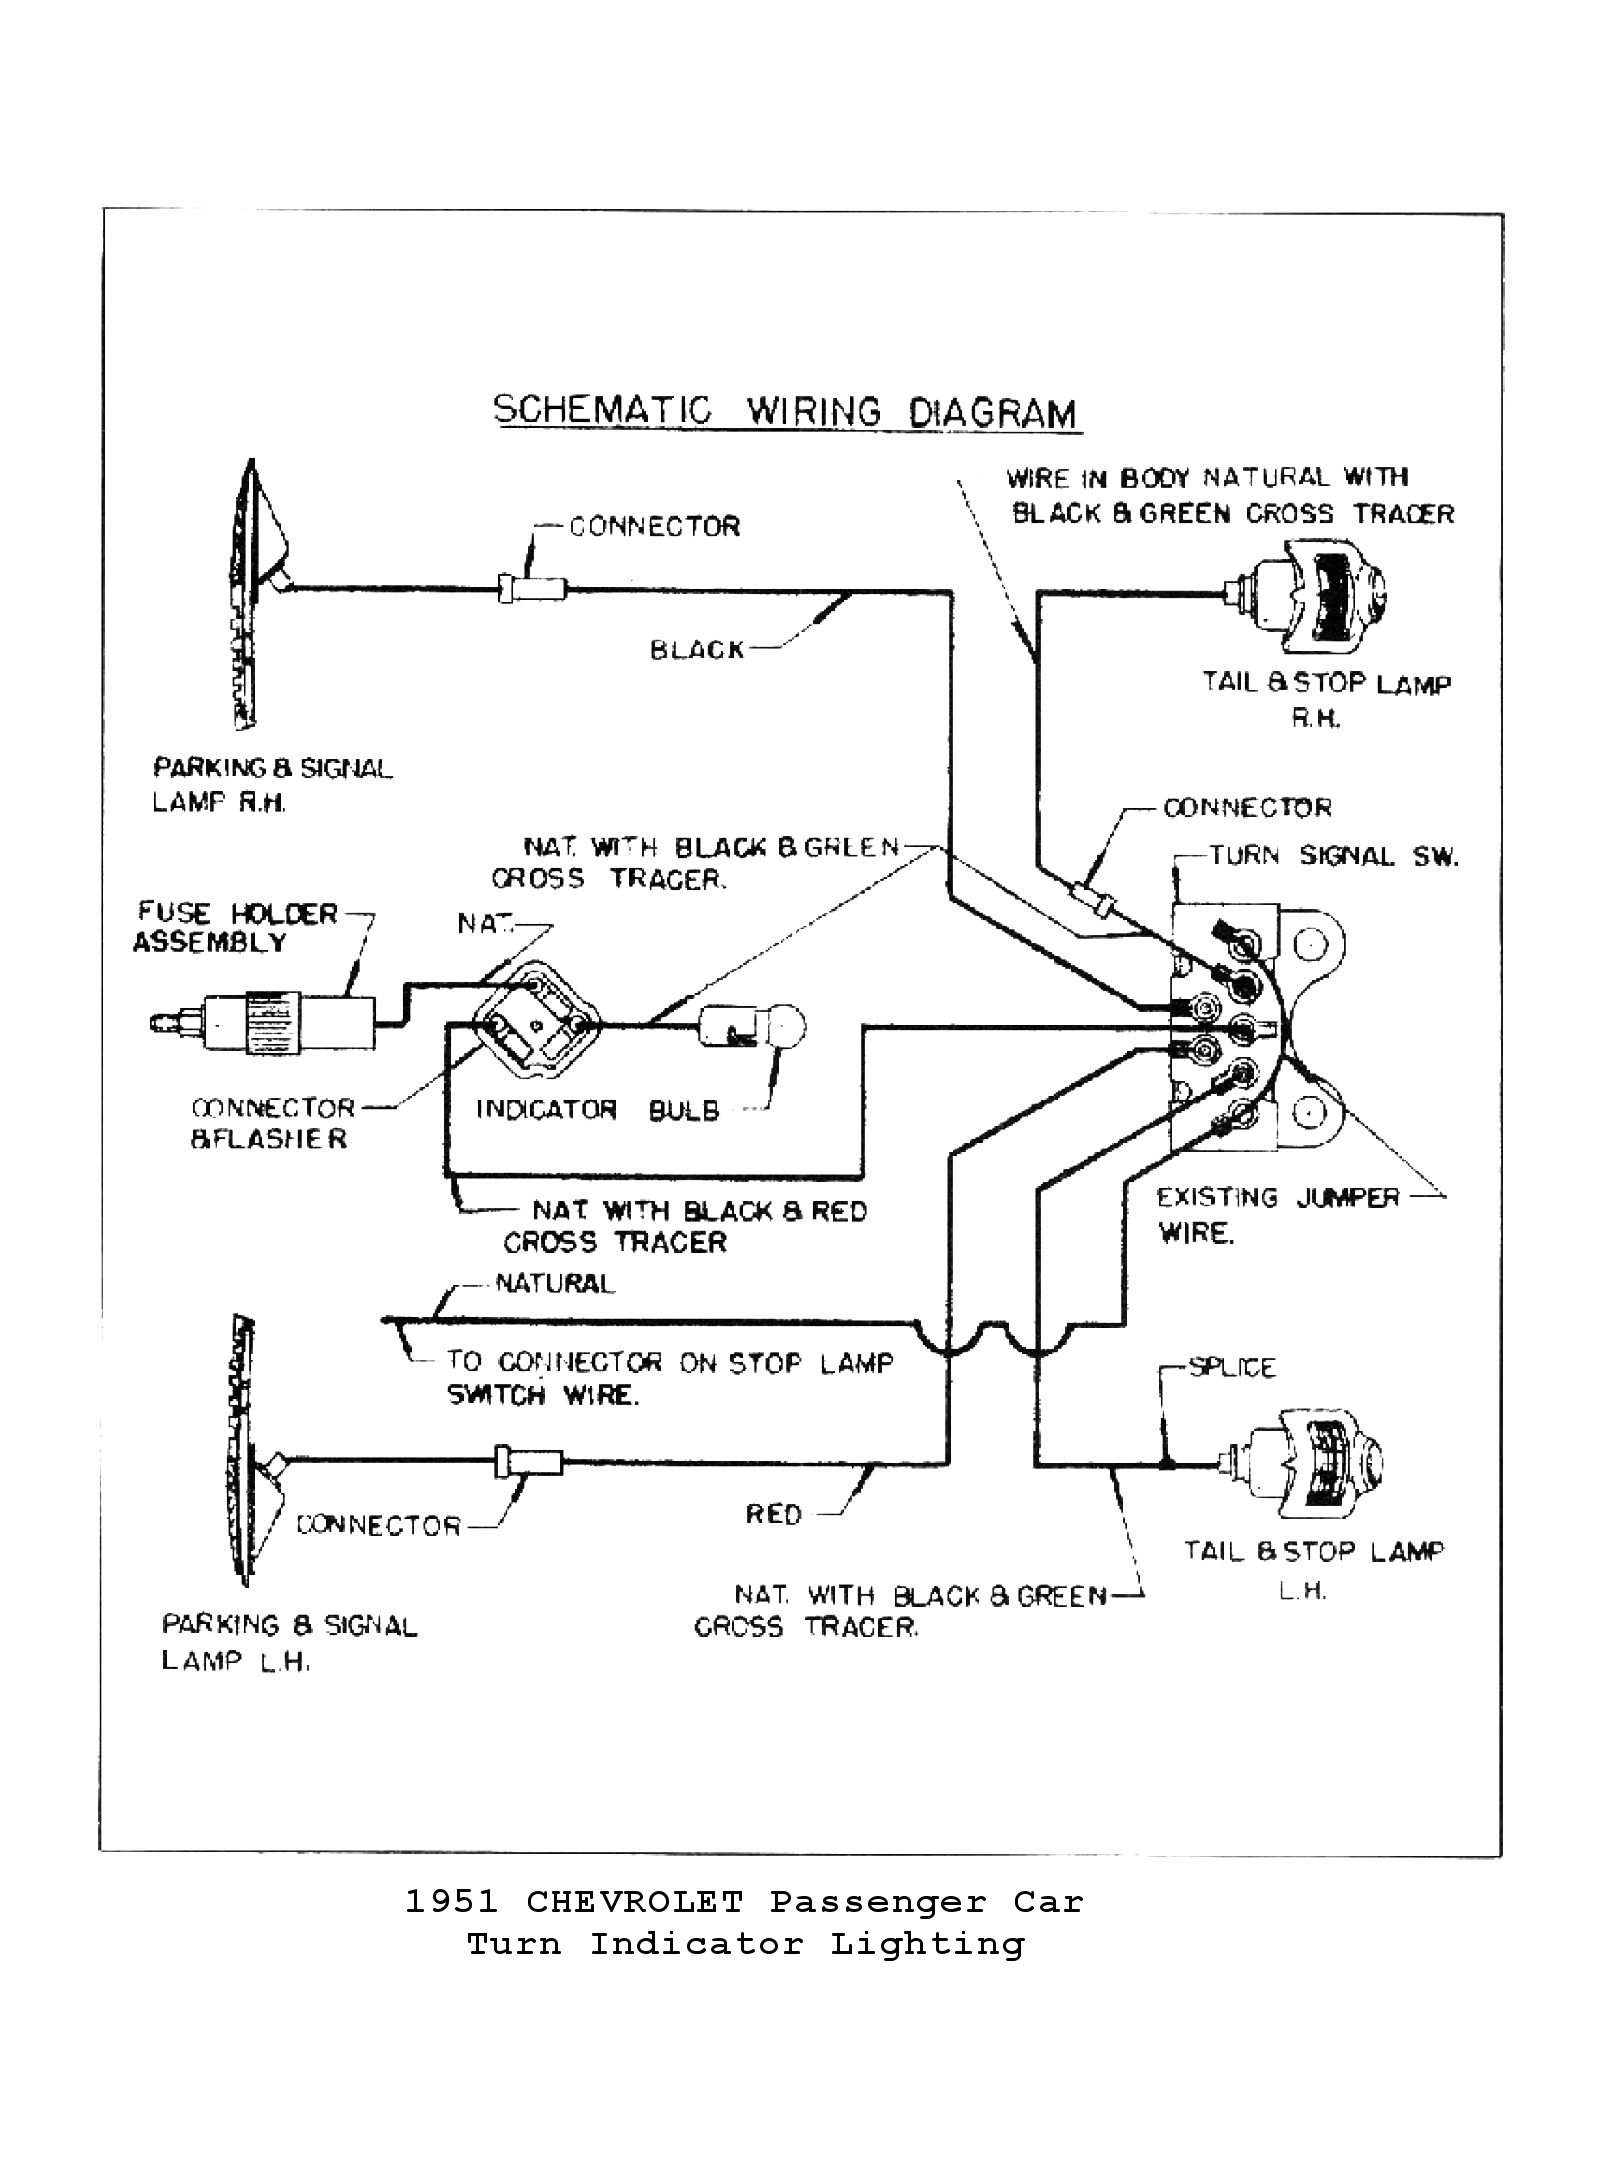 55 chevy ignition switch wiring wiring diagram chevy wiring diagrams